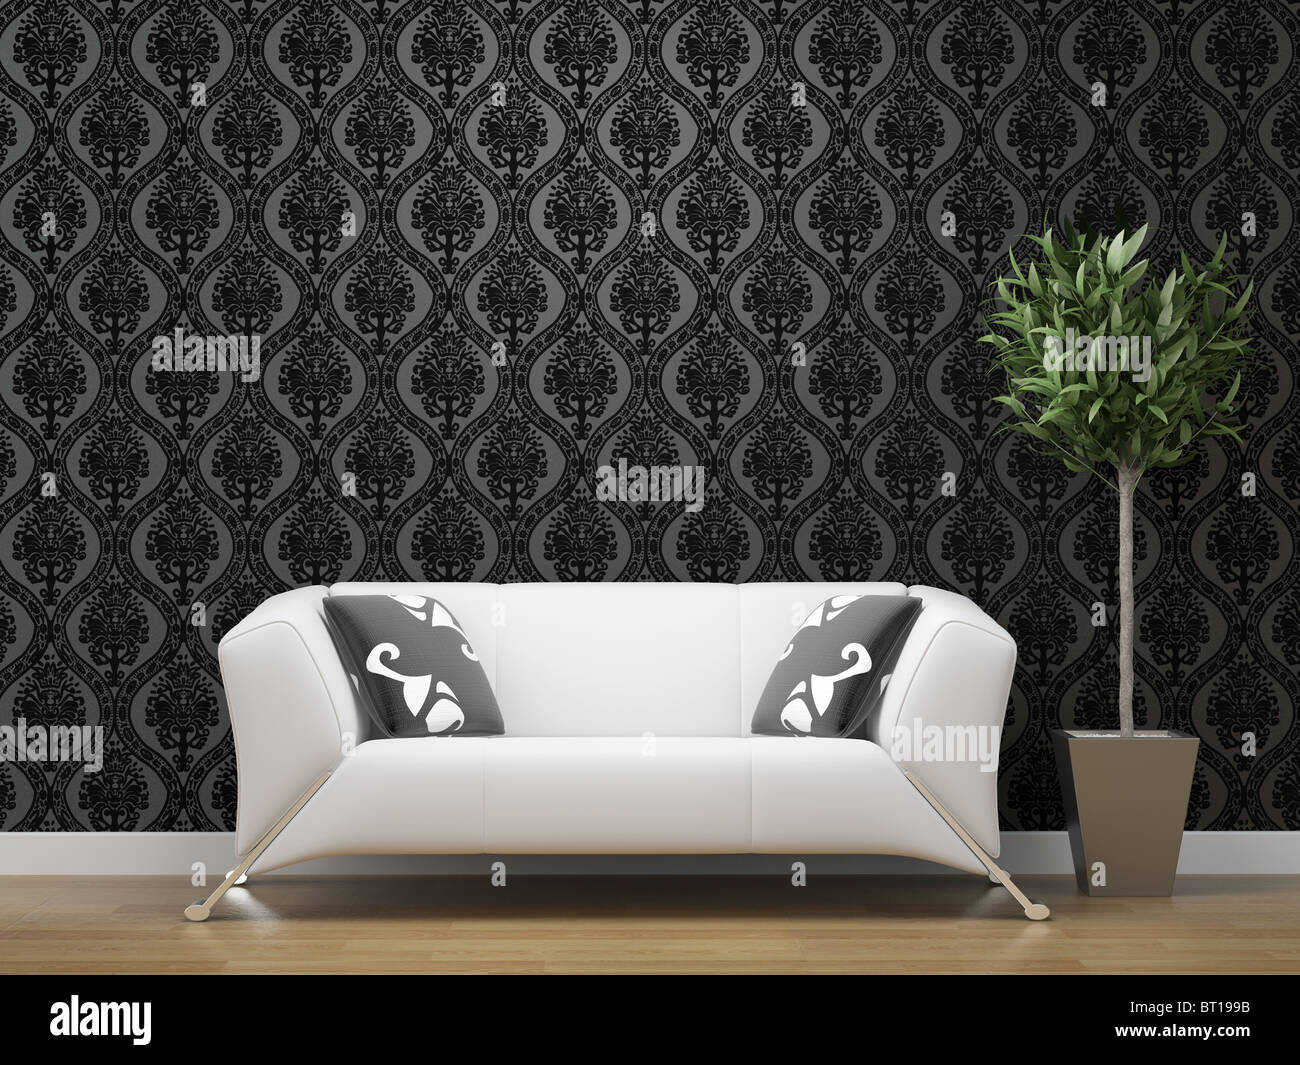 interior design of white sofa on black and silver wallpaper stock